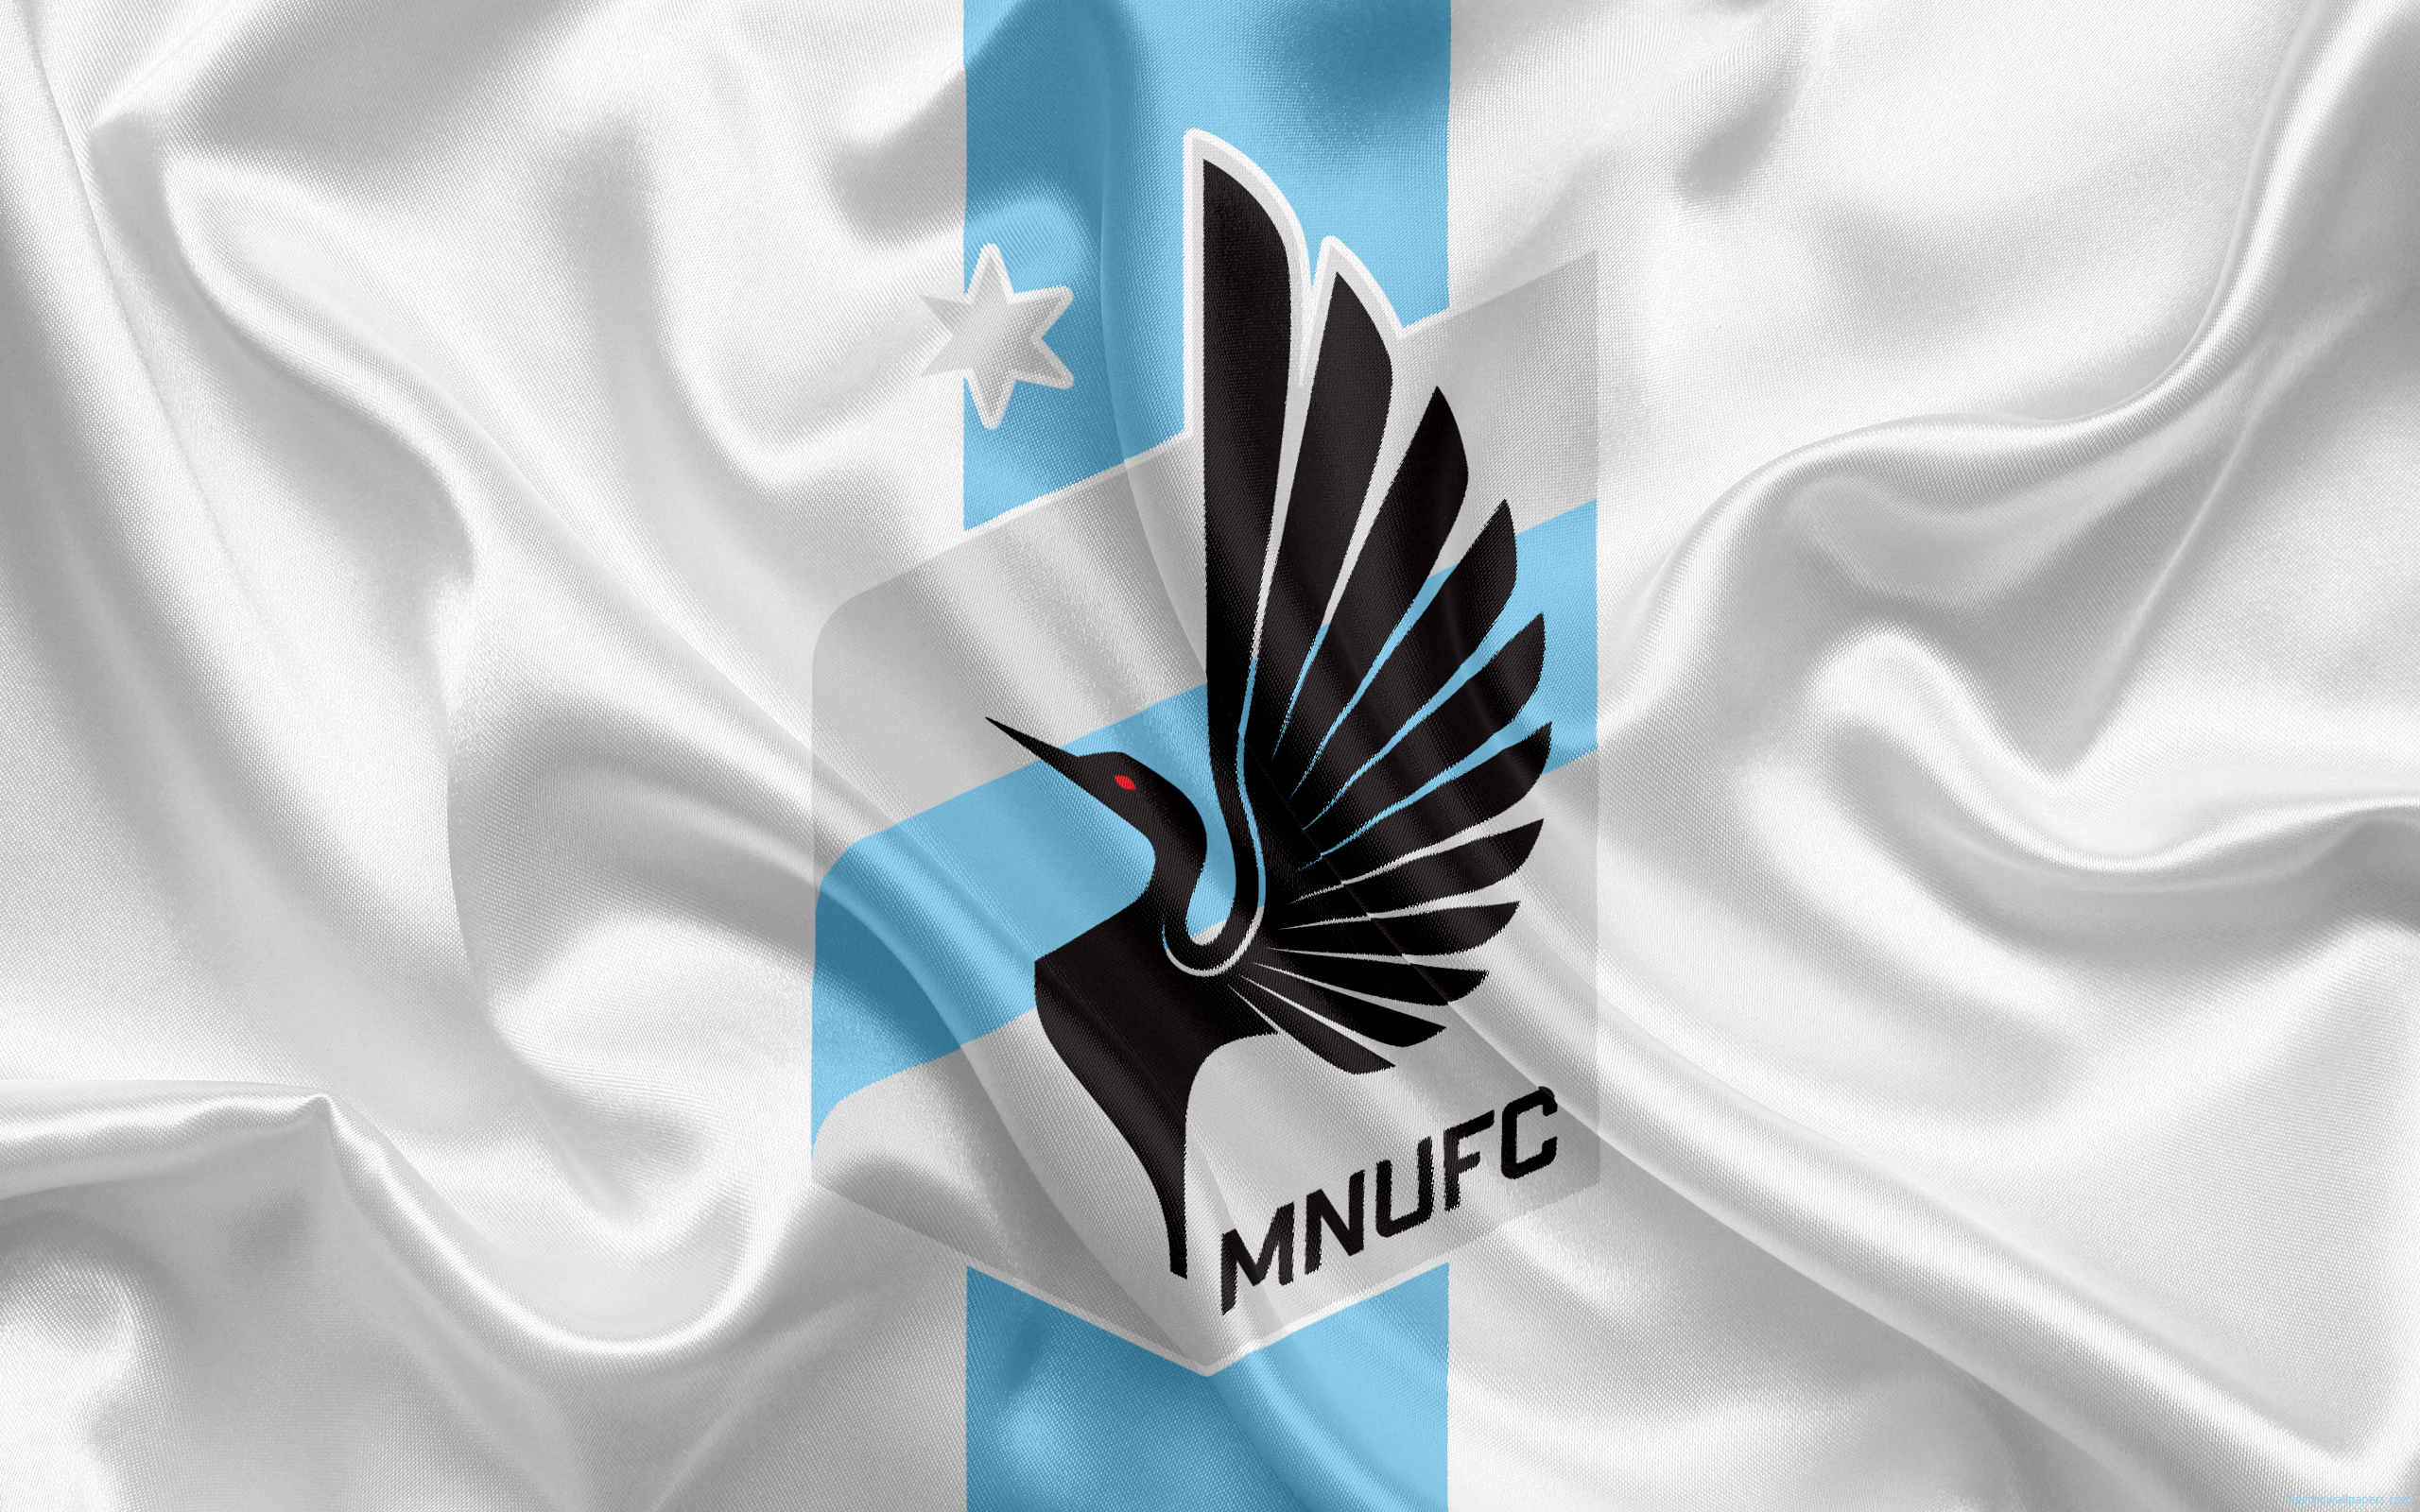 Minnesota United FC HD Wallpaper Background Image 2560x1600 2560x1600